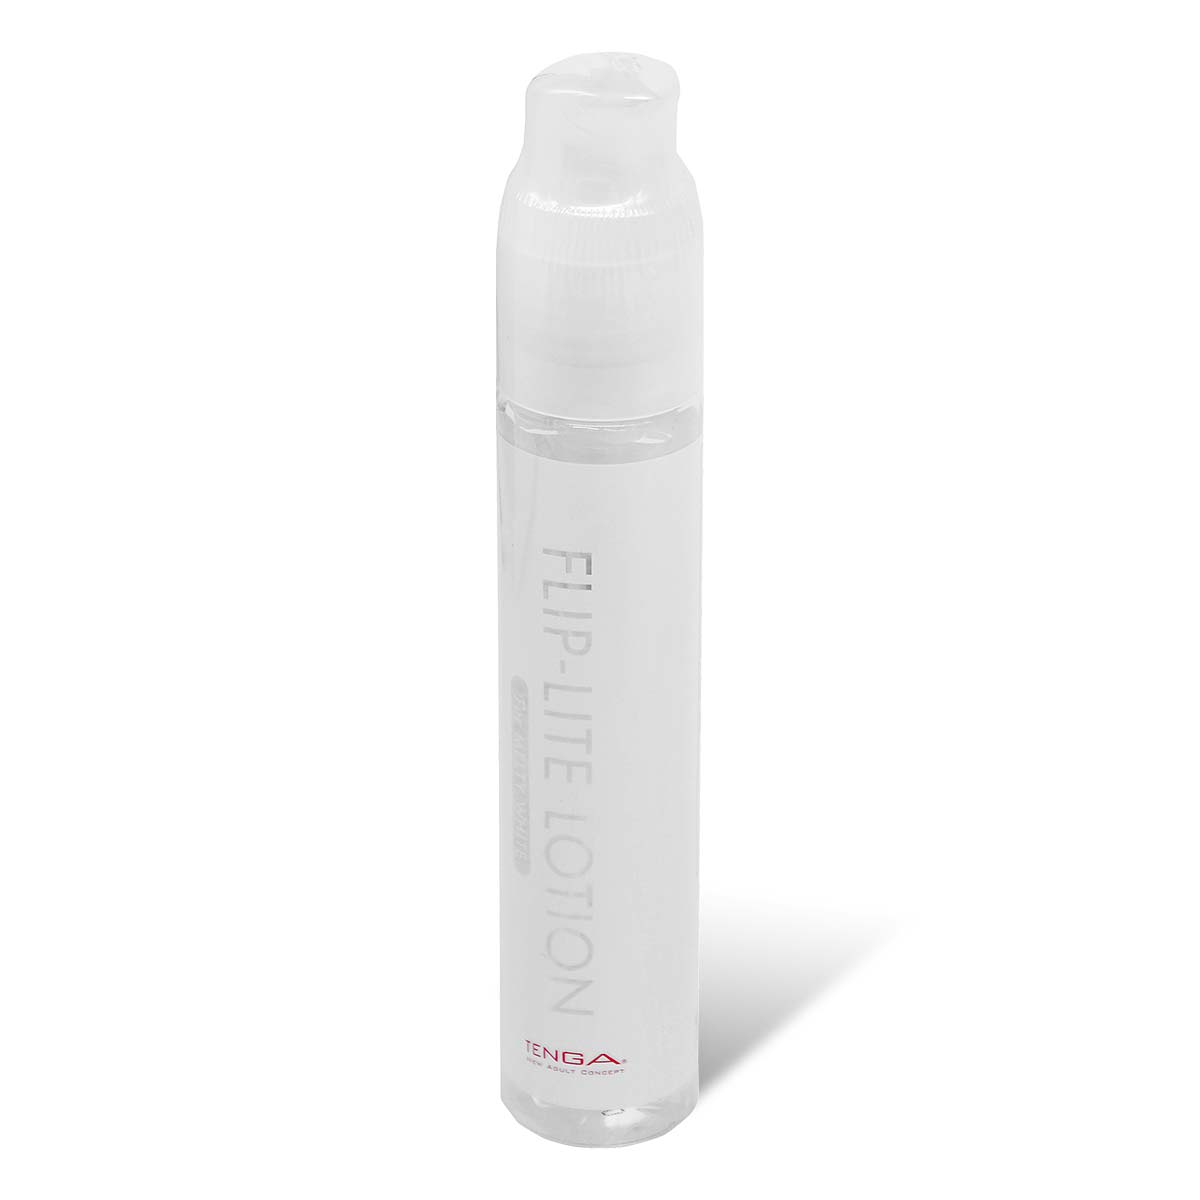 TENGA Flip-Lite Lotion (for Melty White) Water-based Lubricant